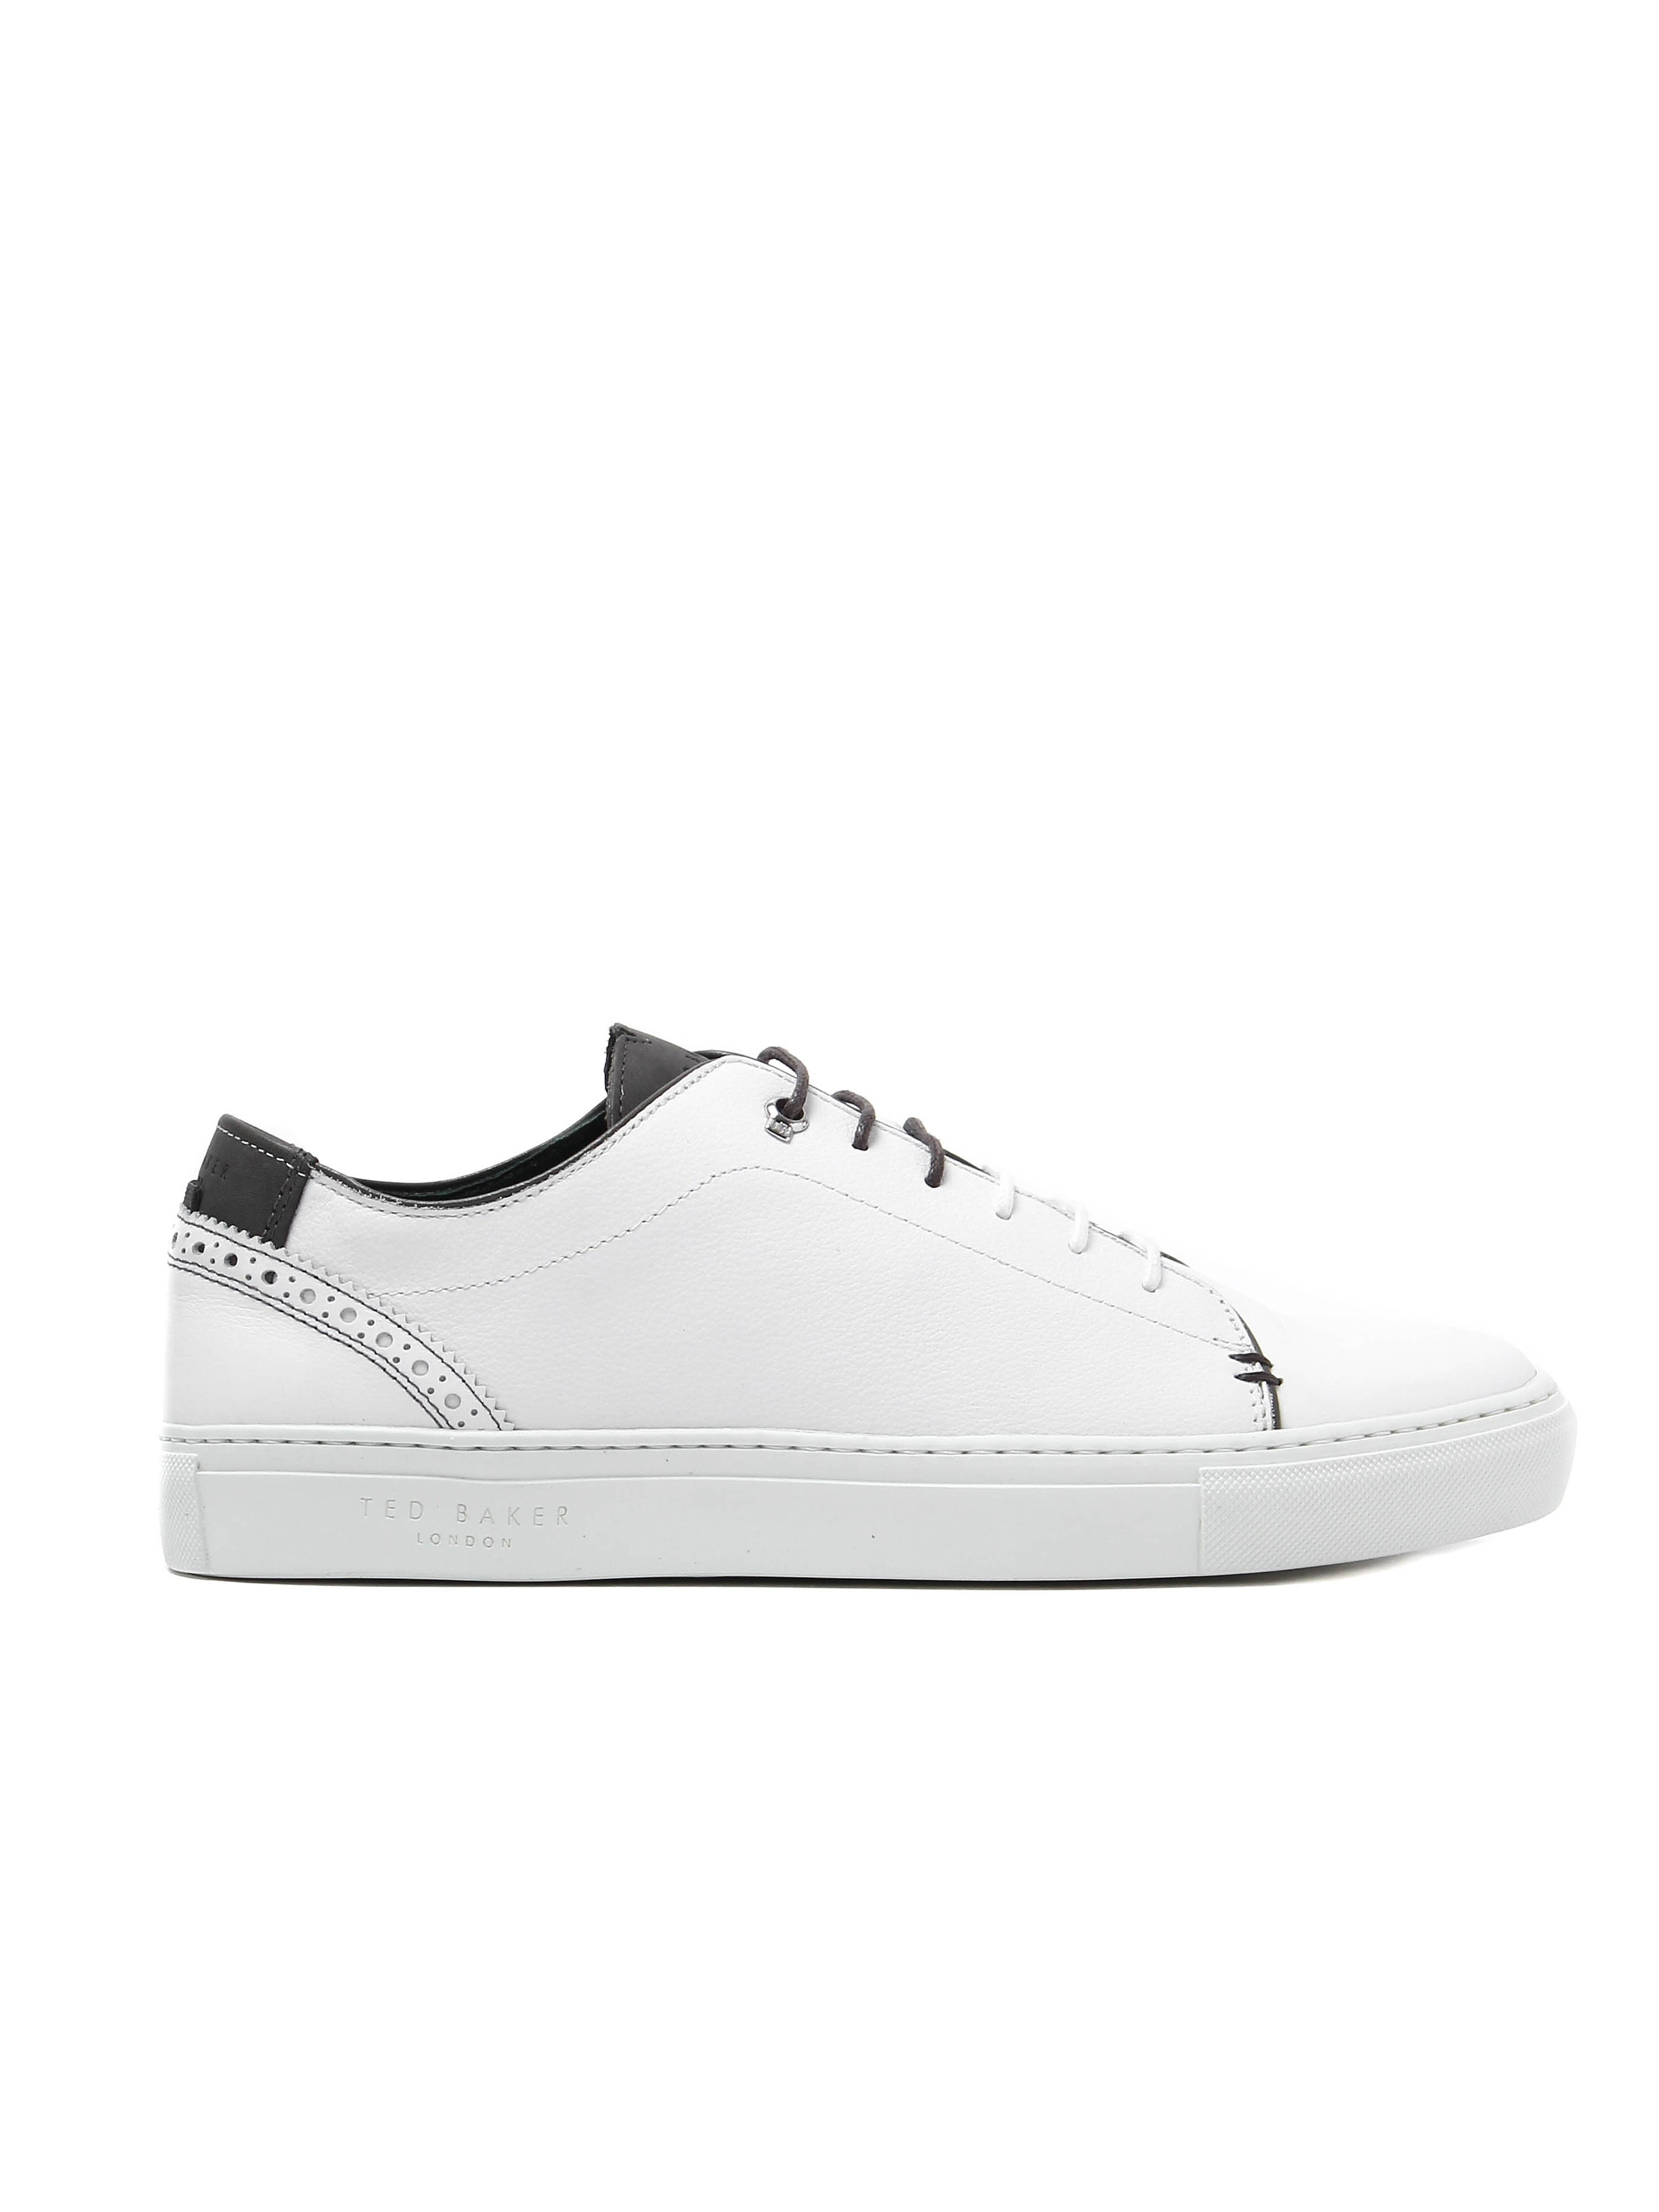 Ted Baker Men's Kiing Trainers - White Leather